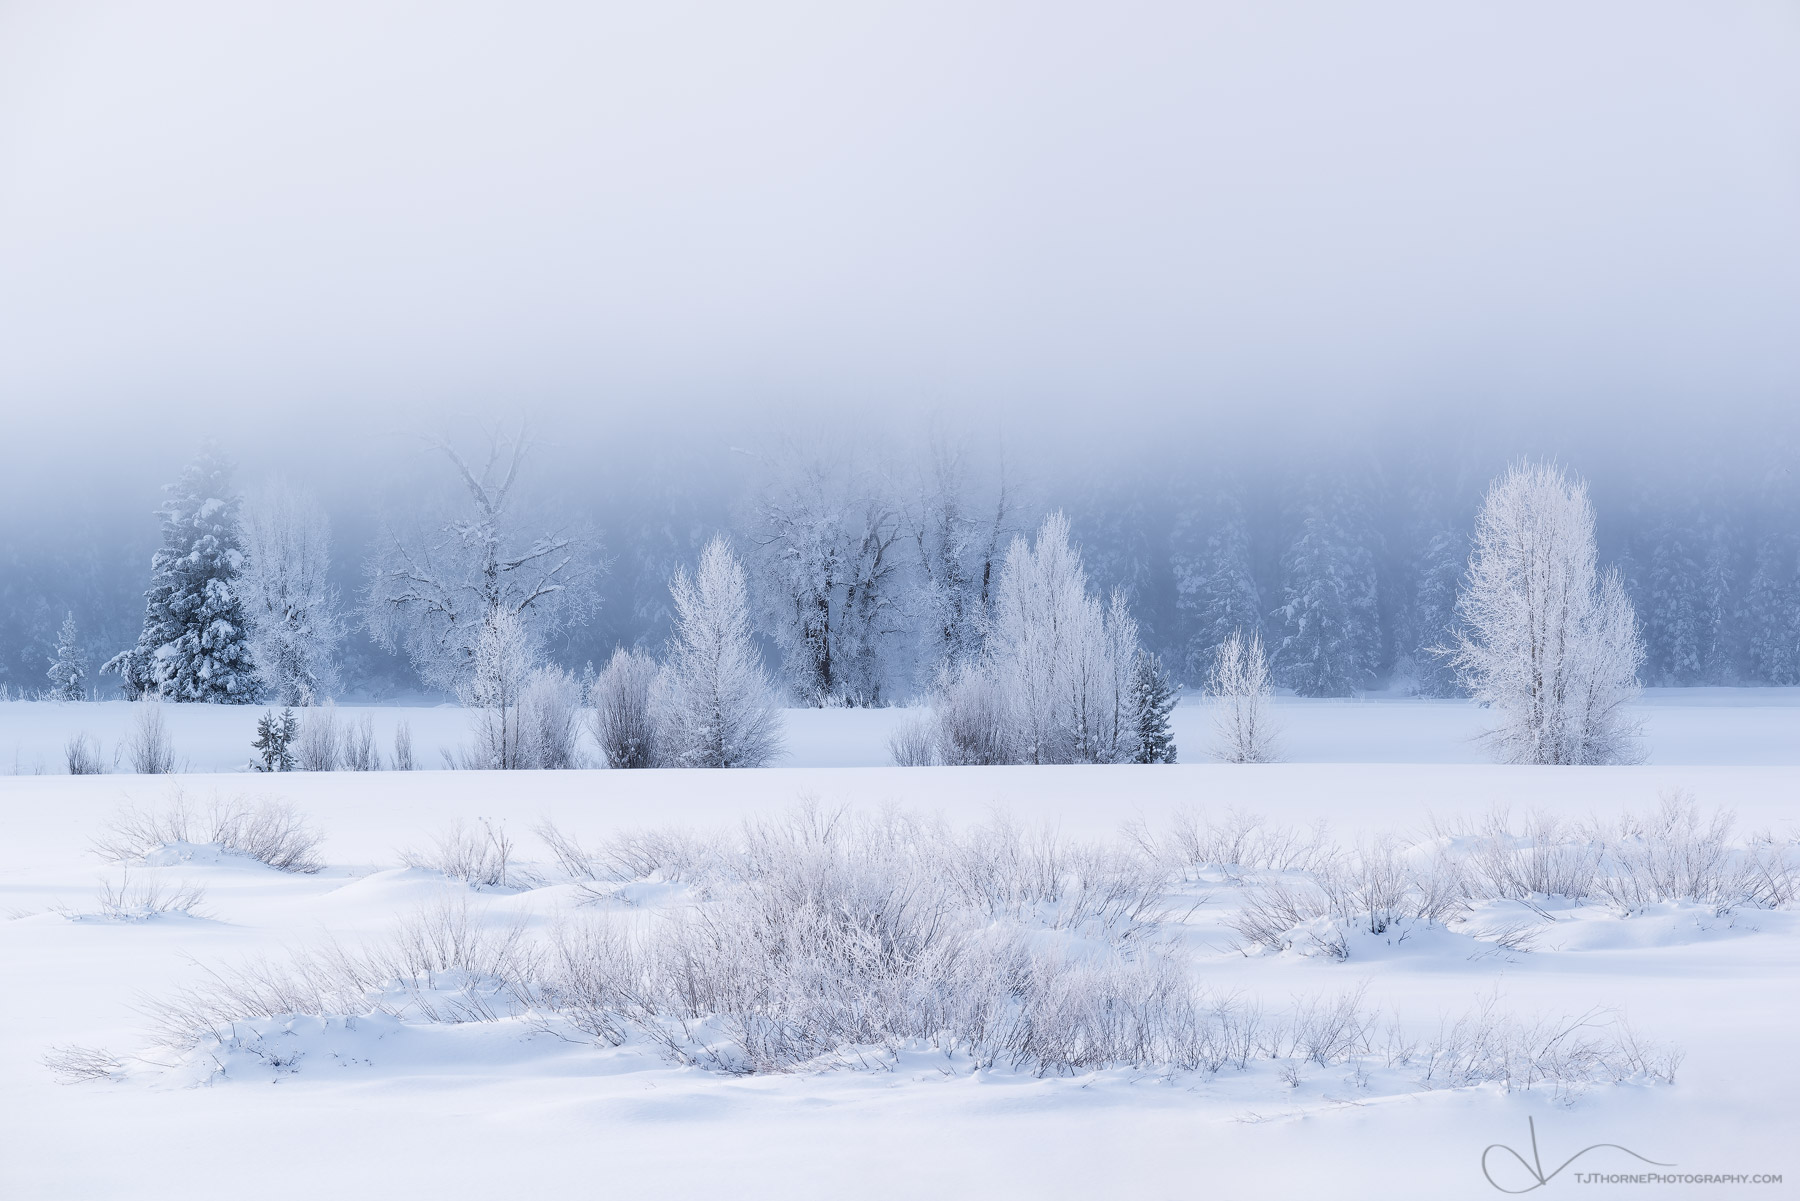 frost, trees, snowy, winter, grand teton national park, wyoming, photo